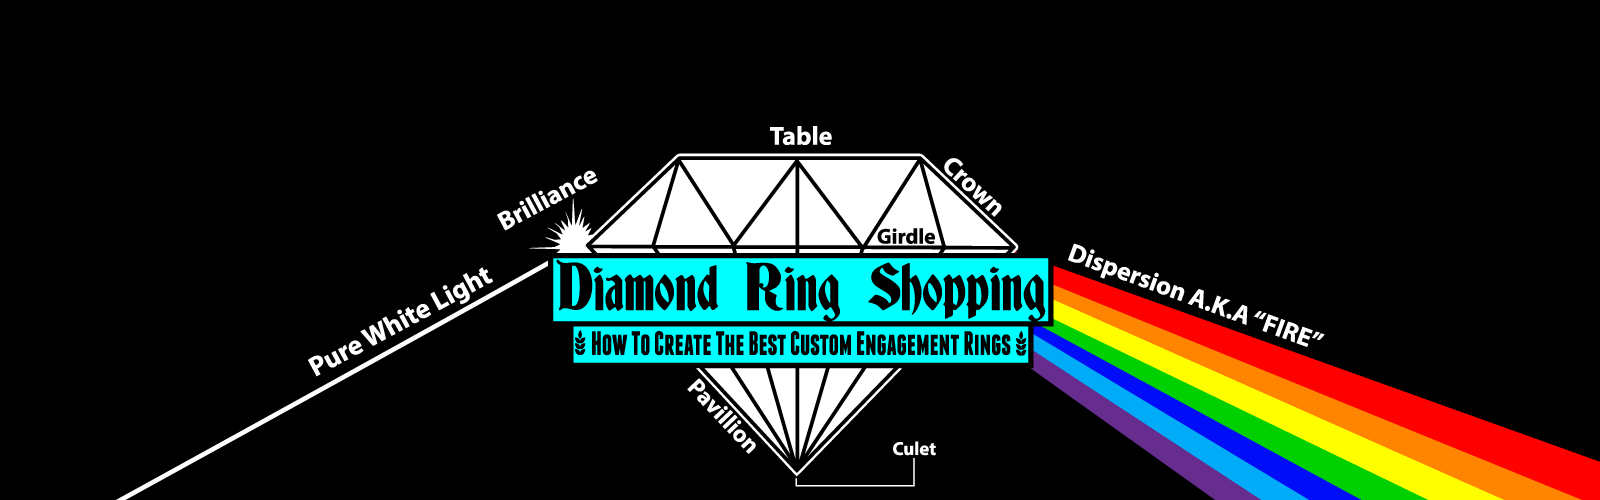 1 Carat Diamond Ring Shopping Tips